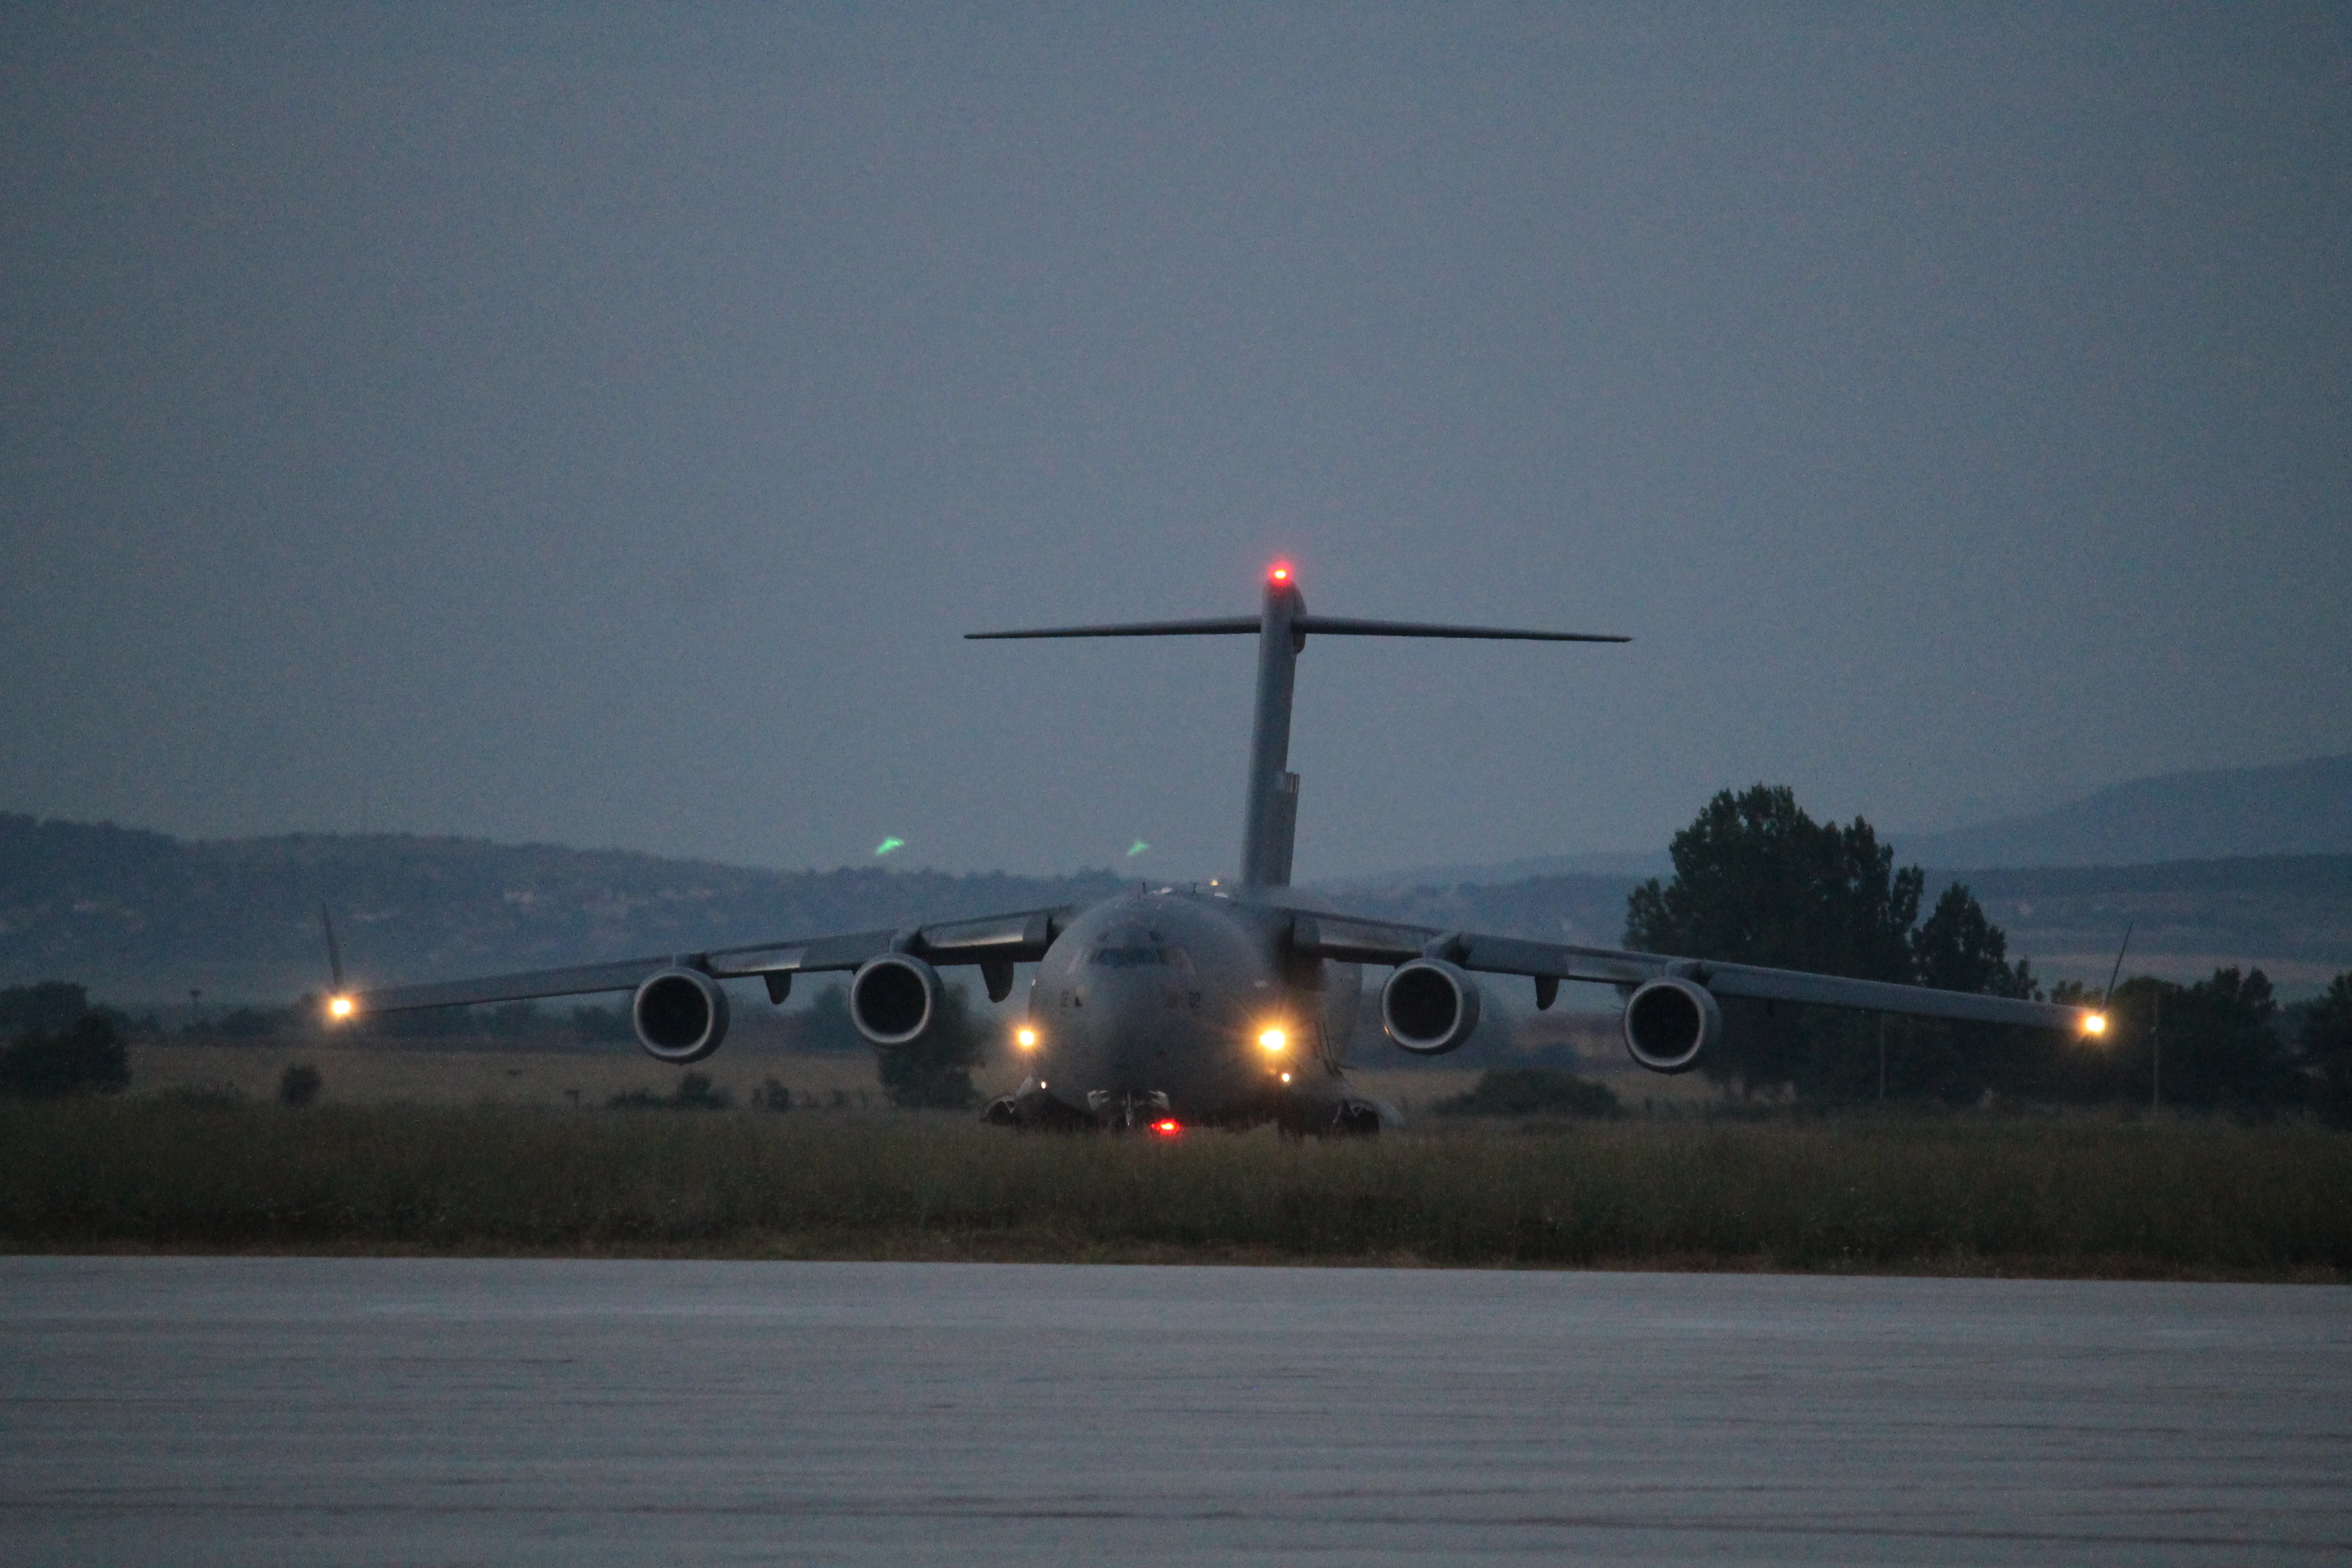 The C-17 carrying the Strykers taxis as the sun rises. (Jen Judson/Staff)